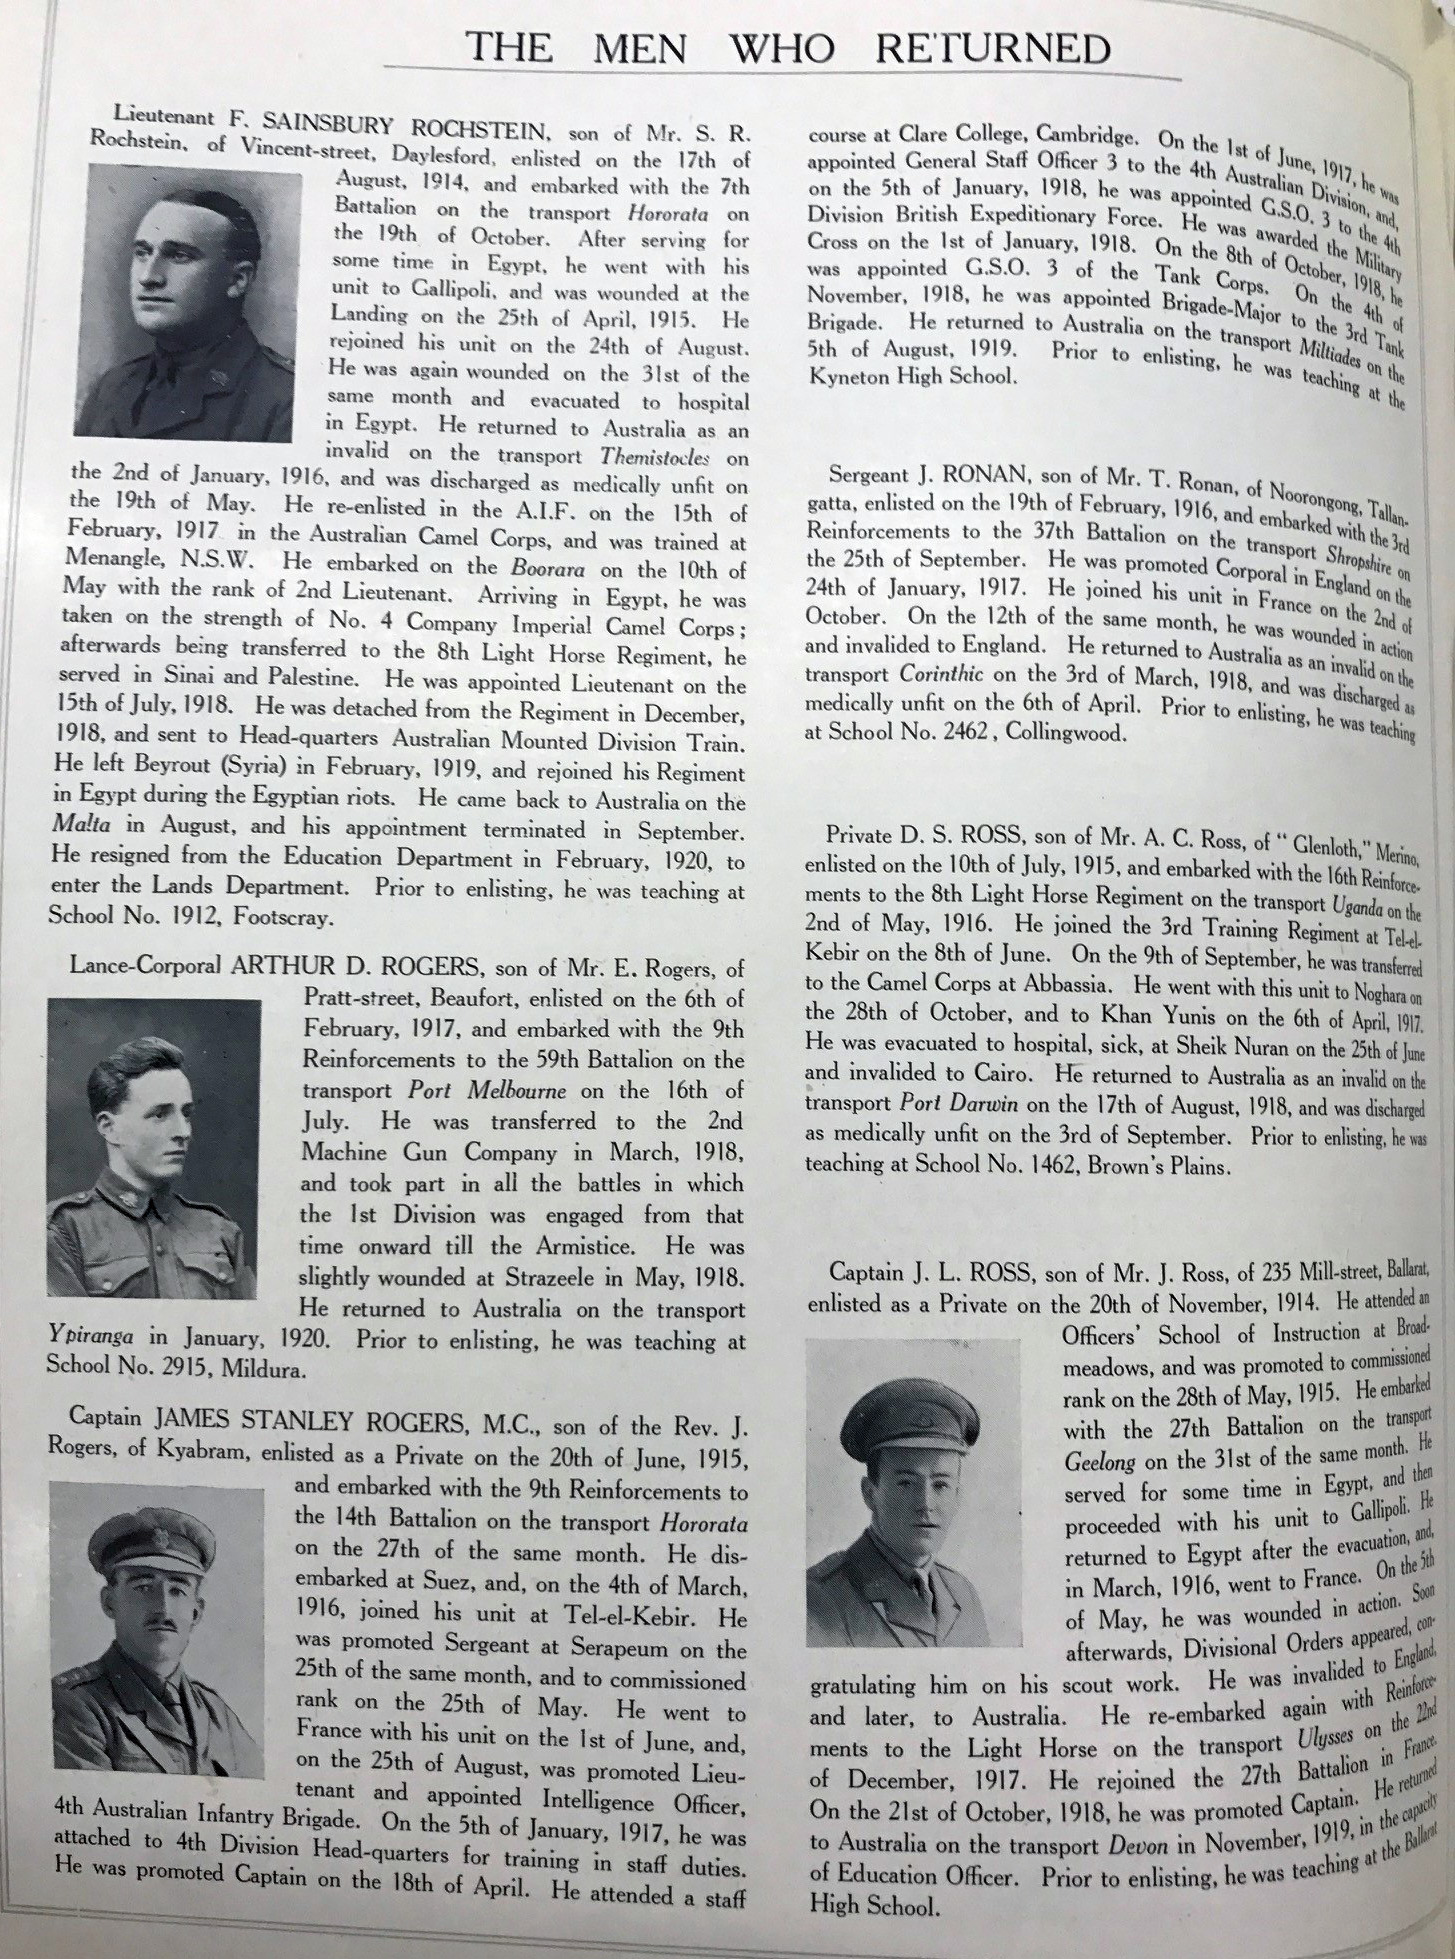 Page featuring bios and portraits